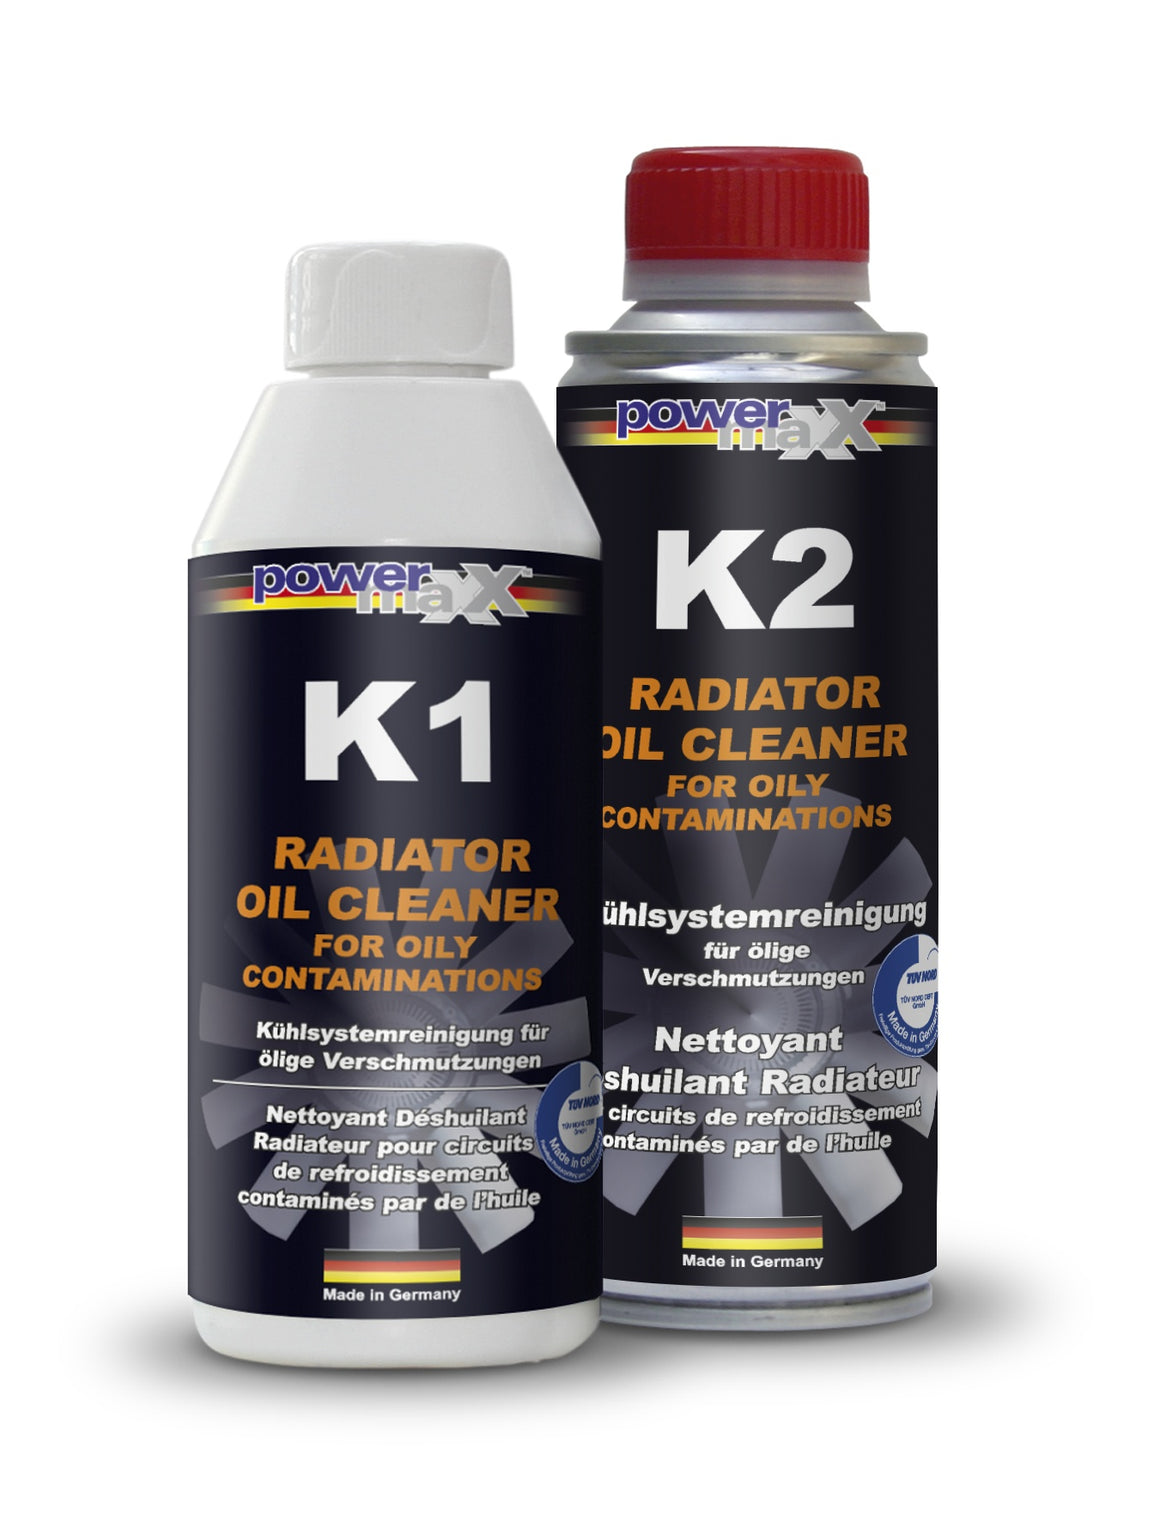 Radiator Oil Cleaner 2-C  - 150ml each - Just European